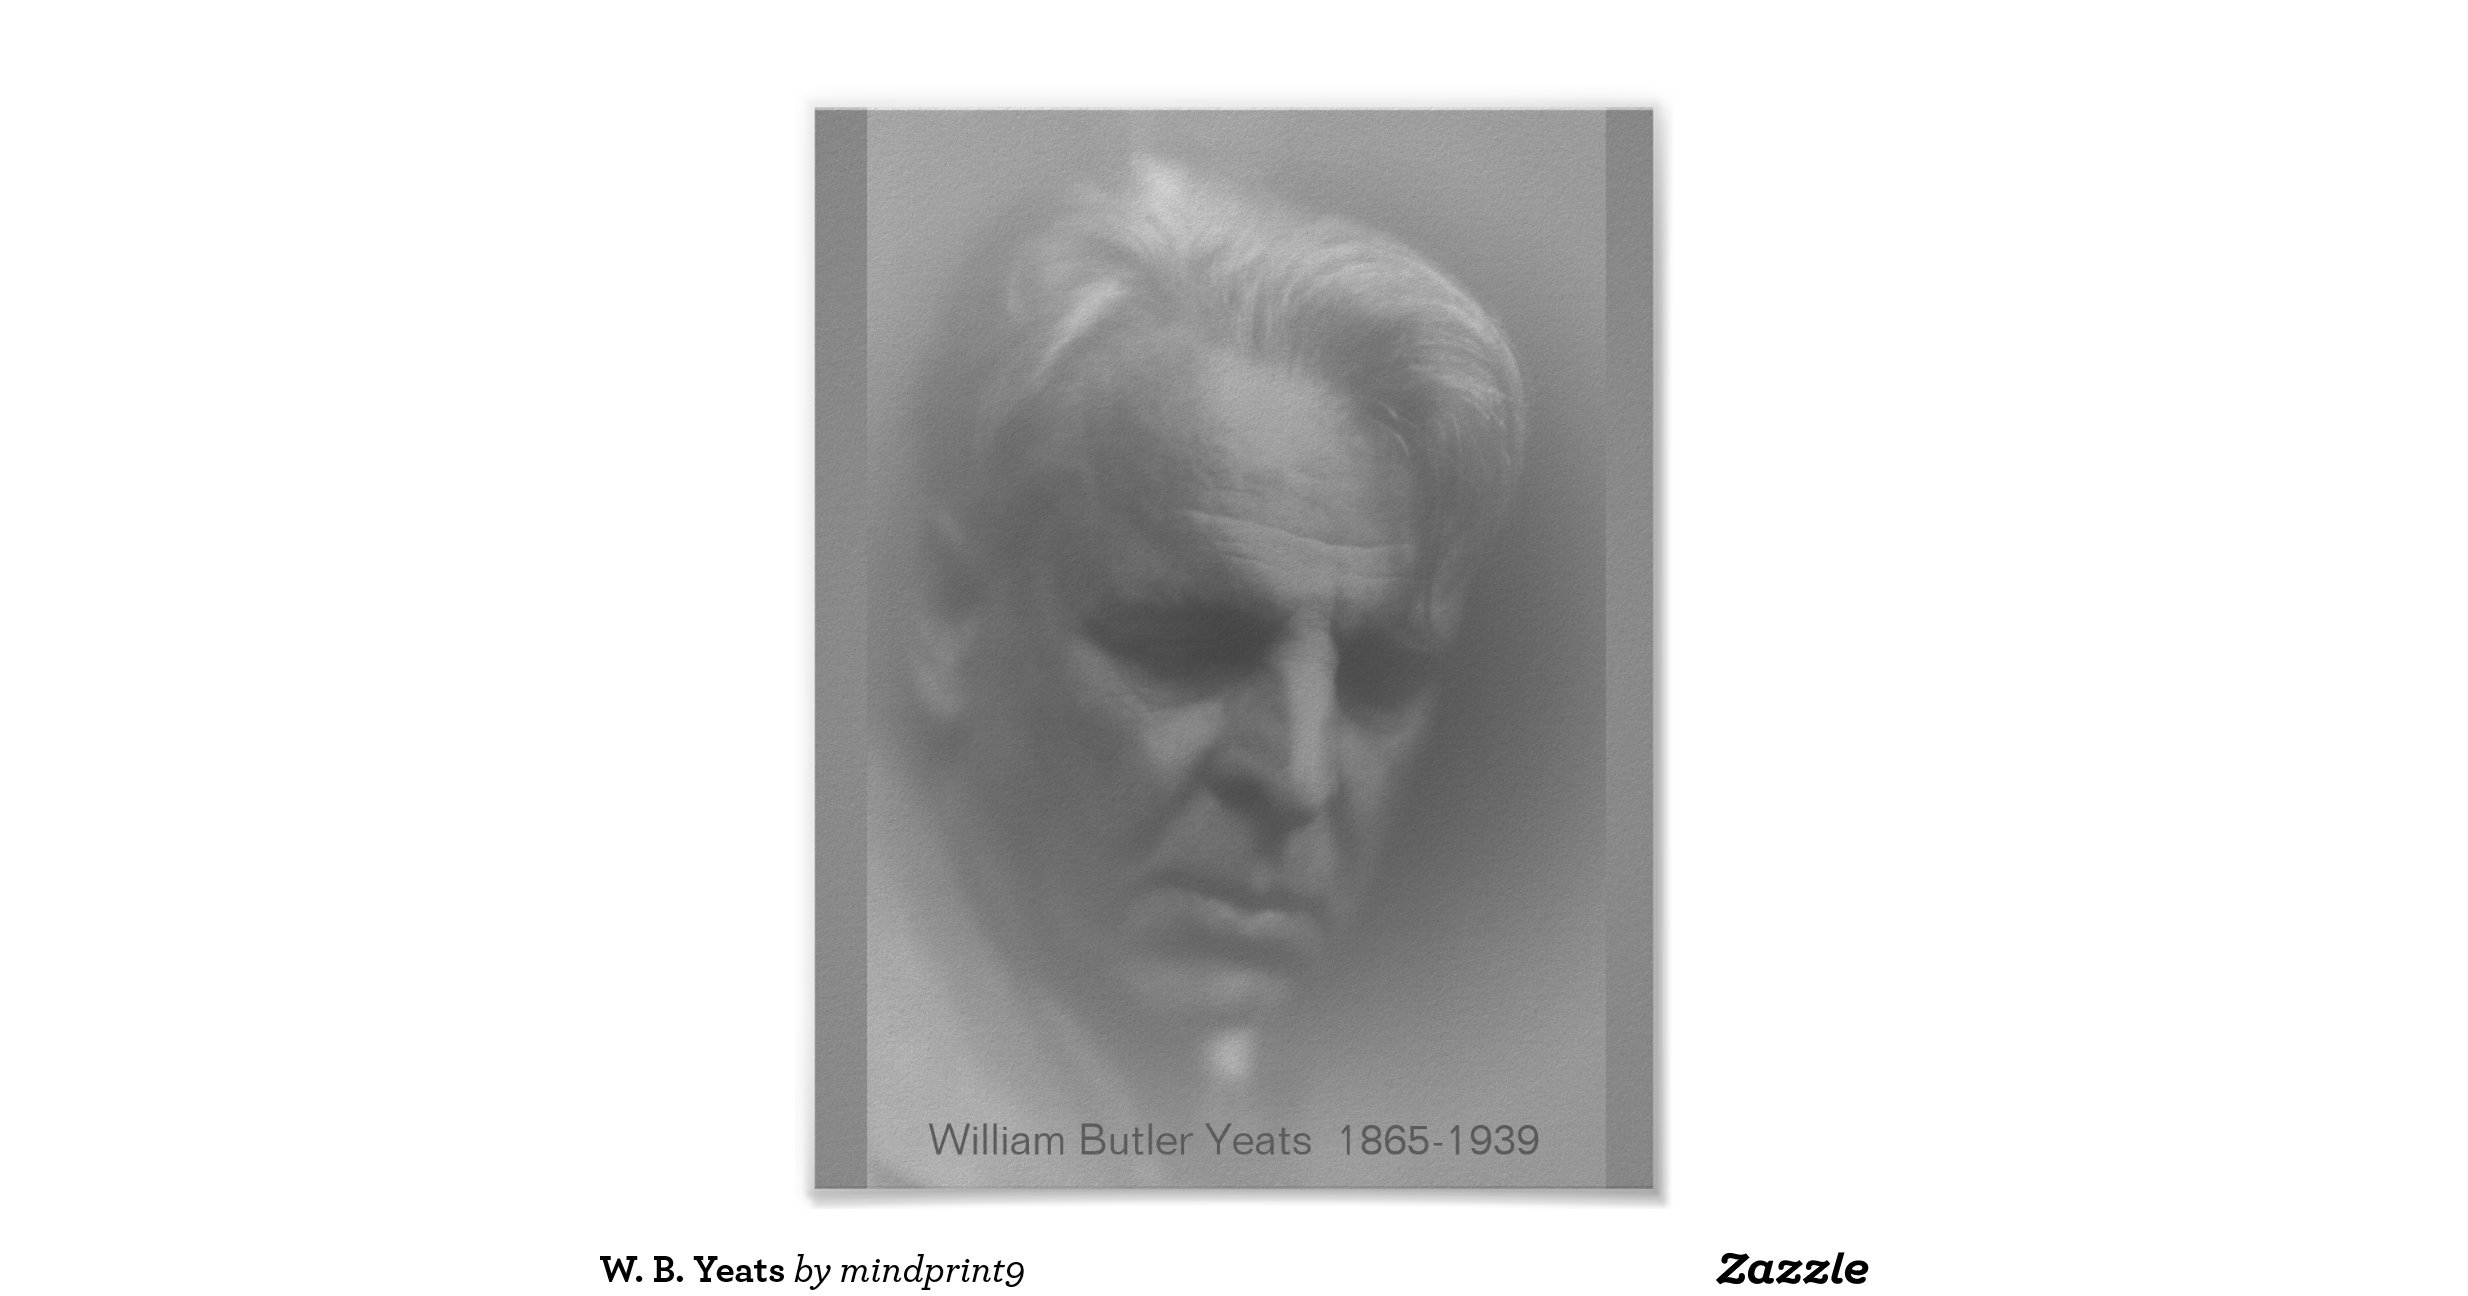 an analysis of audens in memory of wb yeats Auden was born in york, england, to george augustus auden (1872–1957), a physician, and constance rosalie auden (née bicknell 1869–1941), who had trained (but never served) as a missionary nurse.